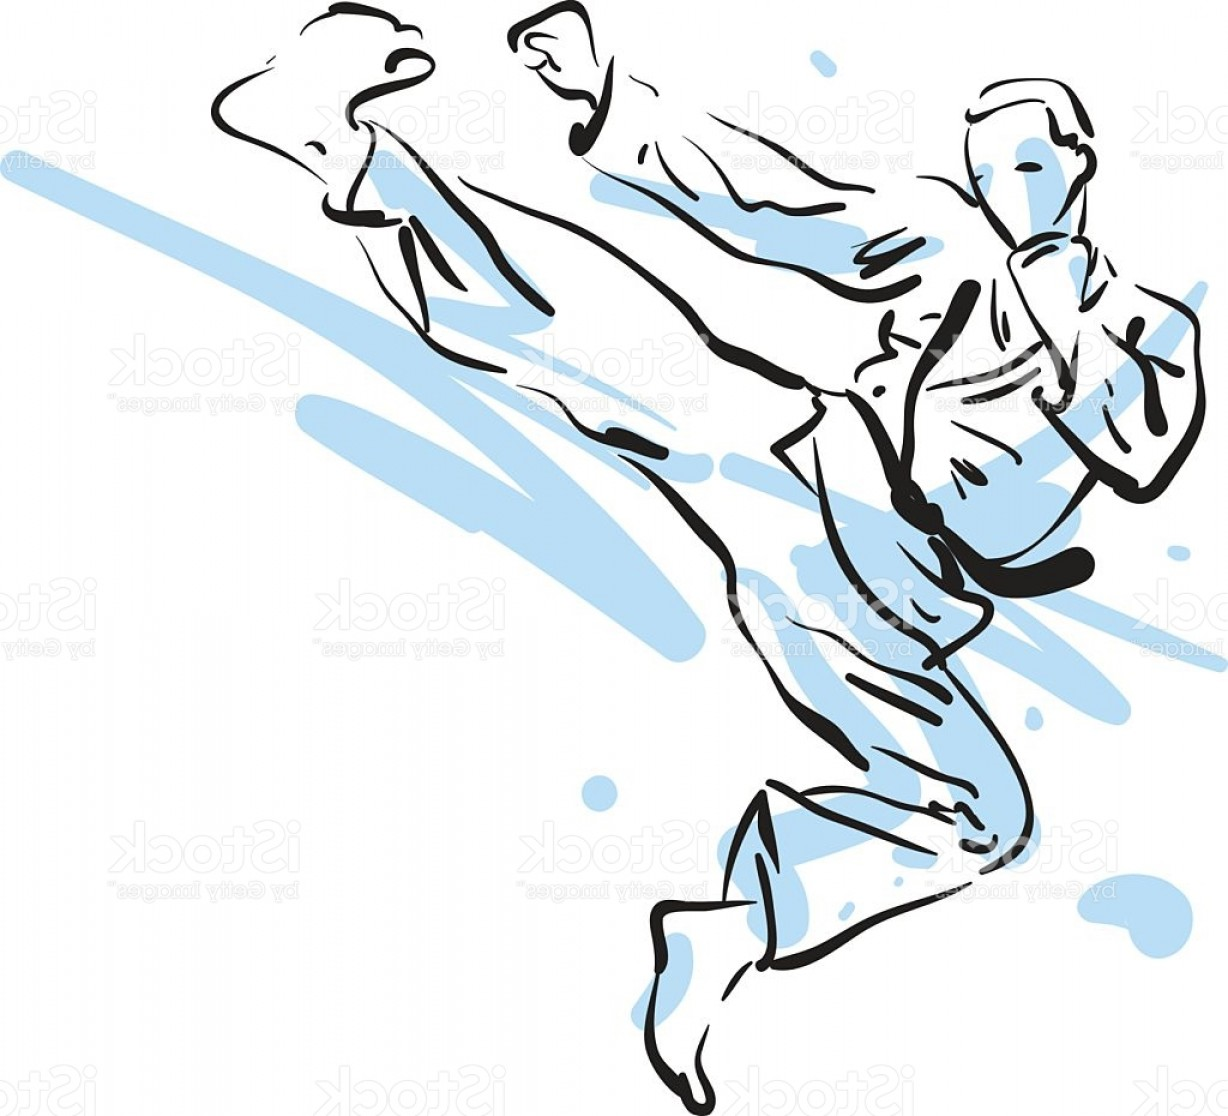 Karate Vector: Karate Kick Vector Illustration Gm